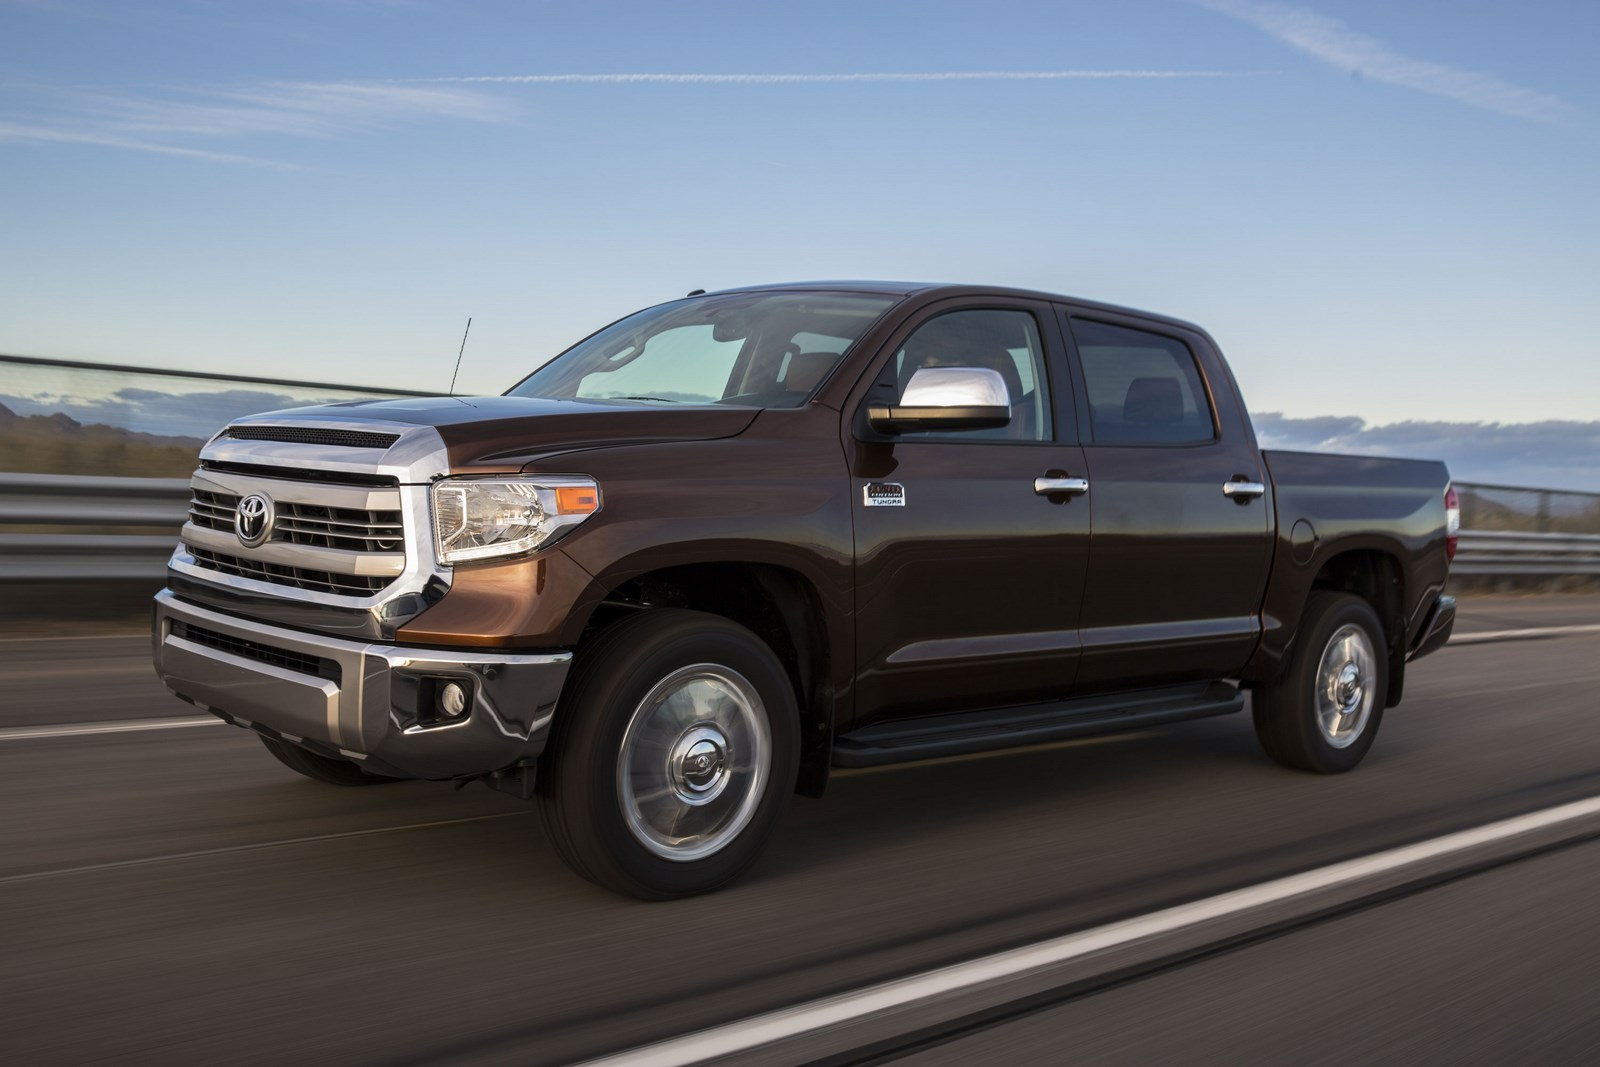 Toyota Unveils 2014 Redesigned Tundra Full-Size Pickup Truck at 2013